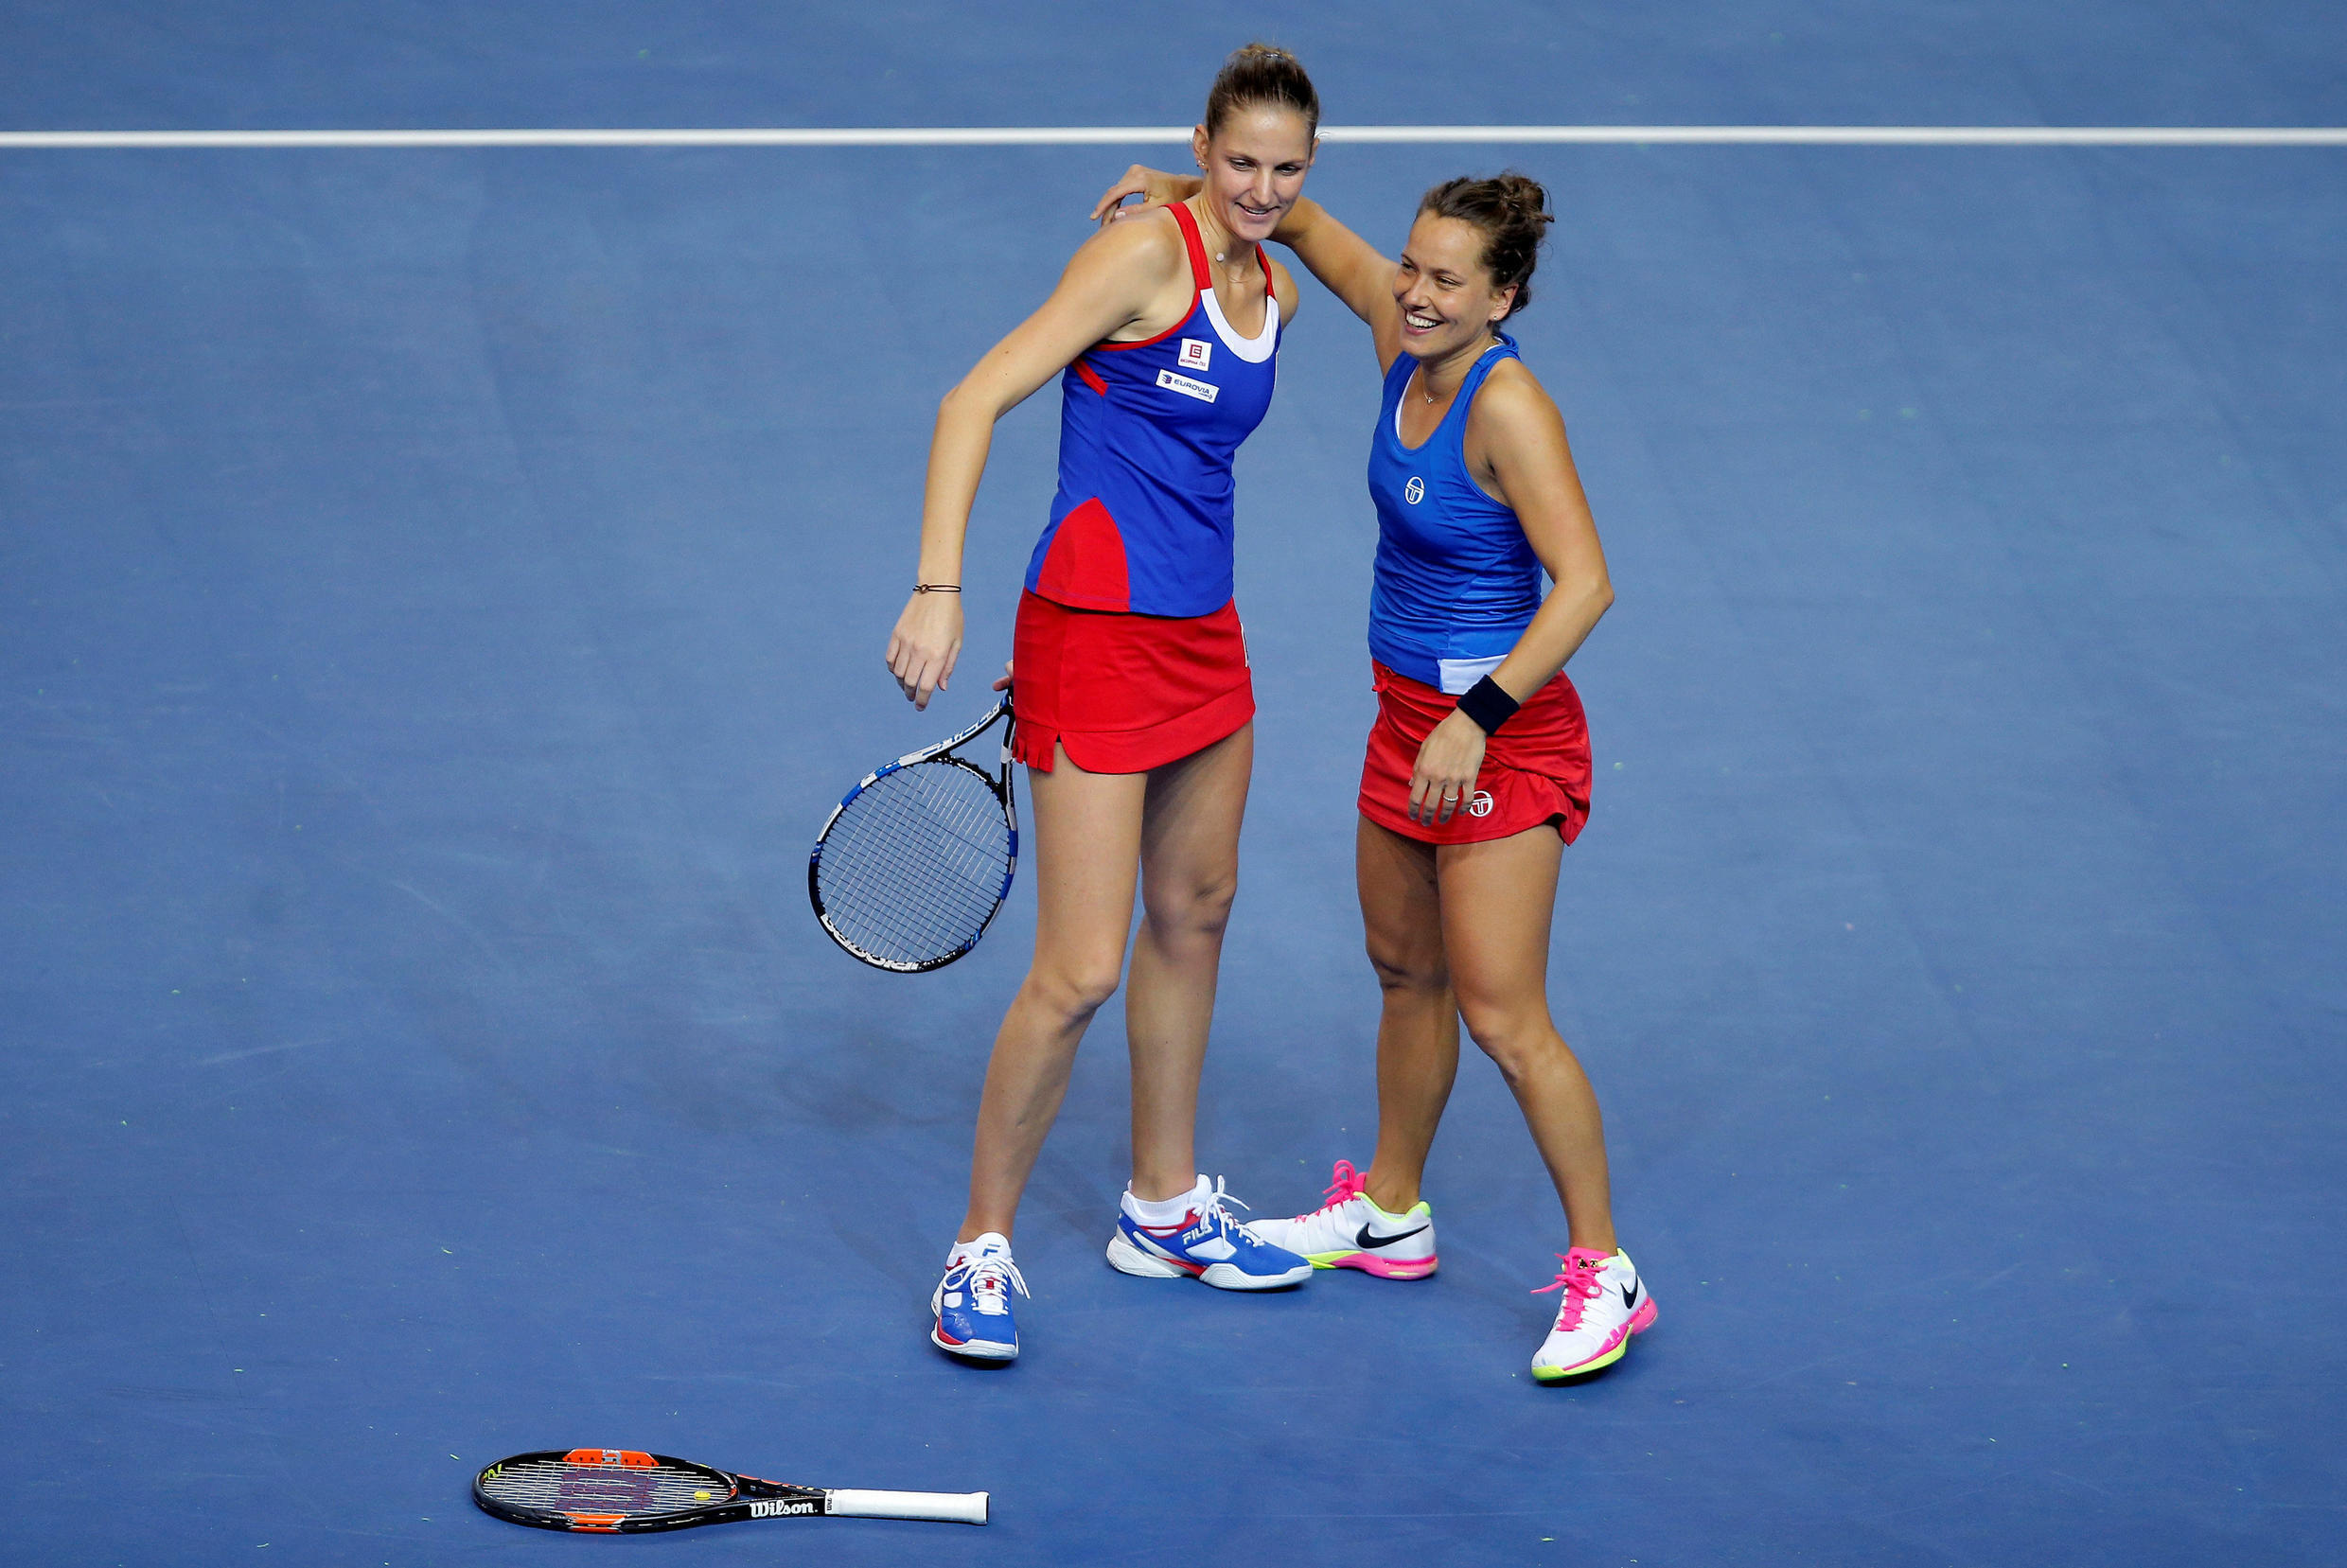 Karolina Pliskova and Barbora Strycova gained the decisive point to give the Czech Republic the 2016 Fed Cup